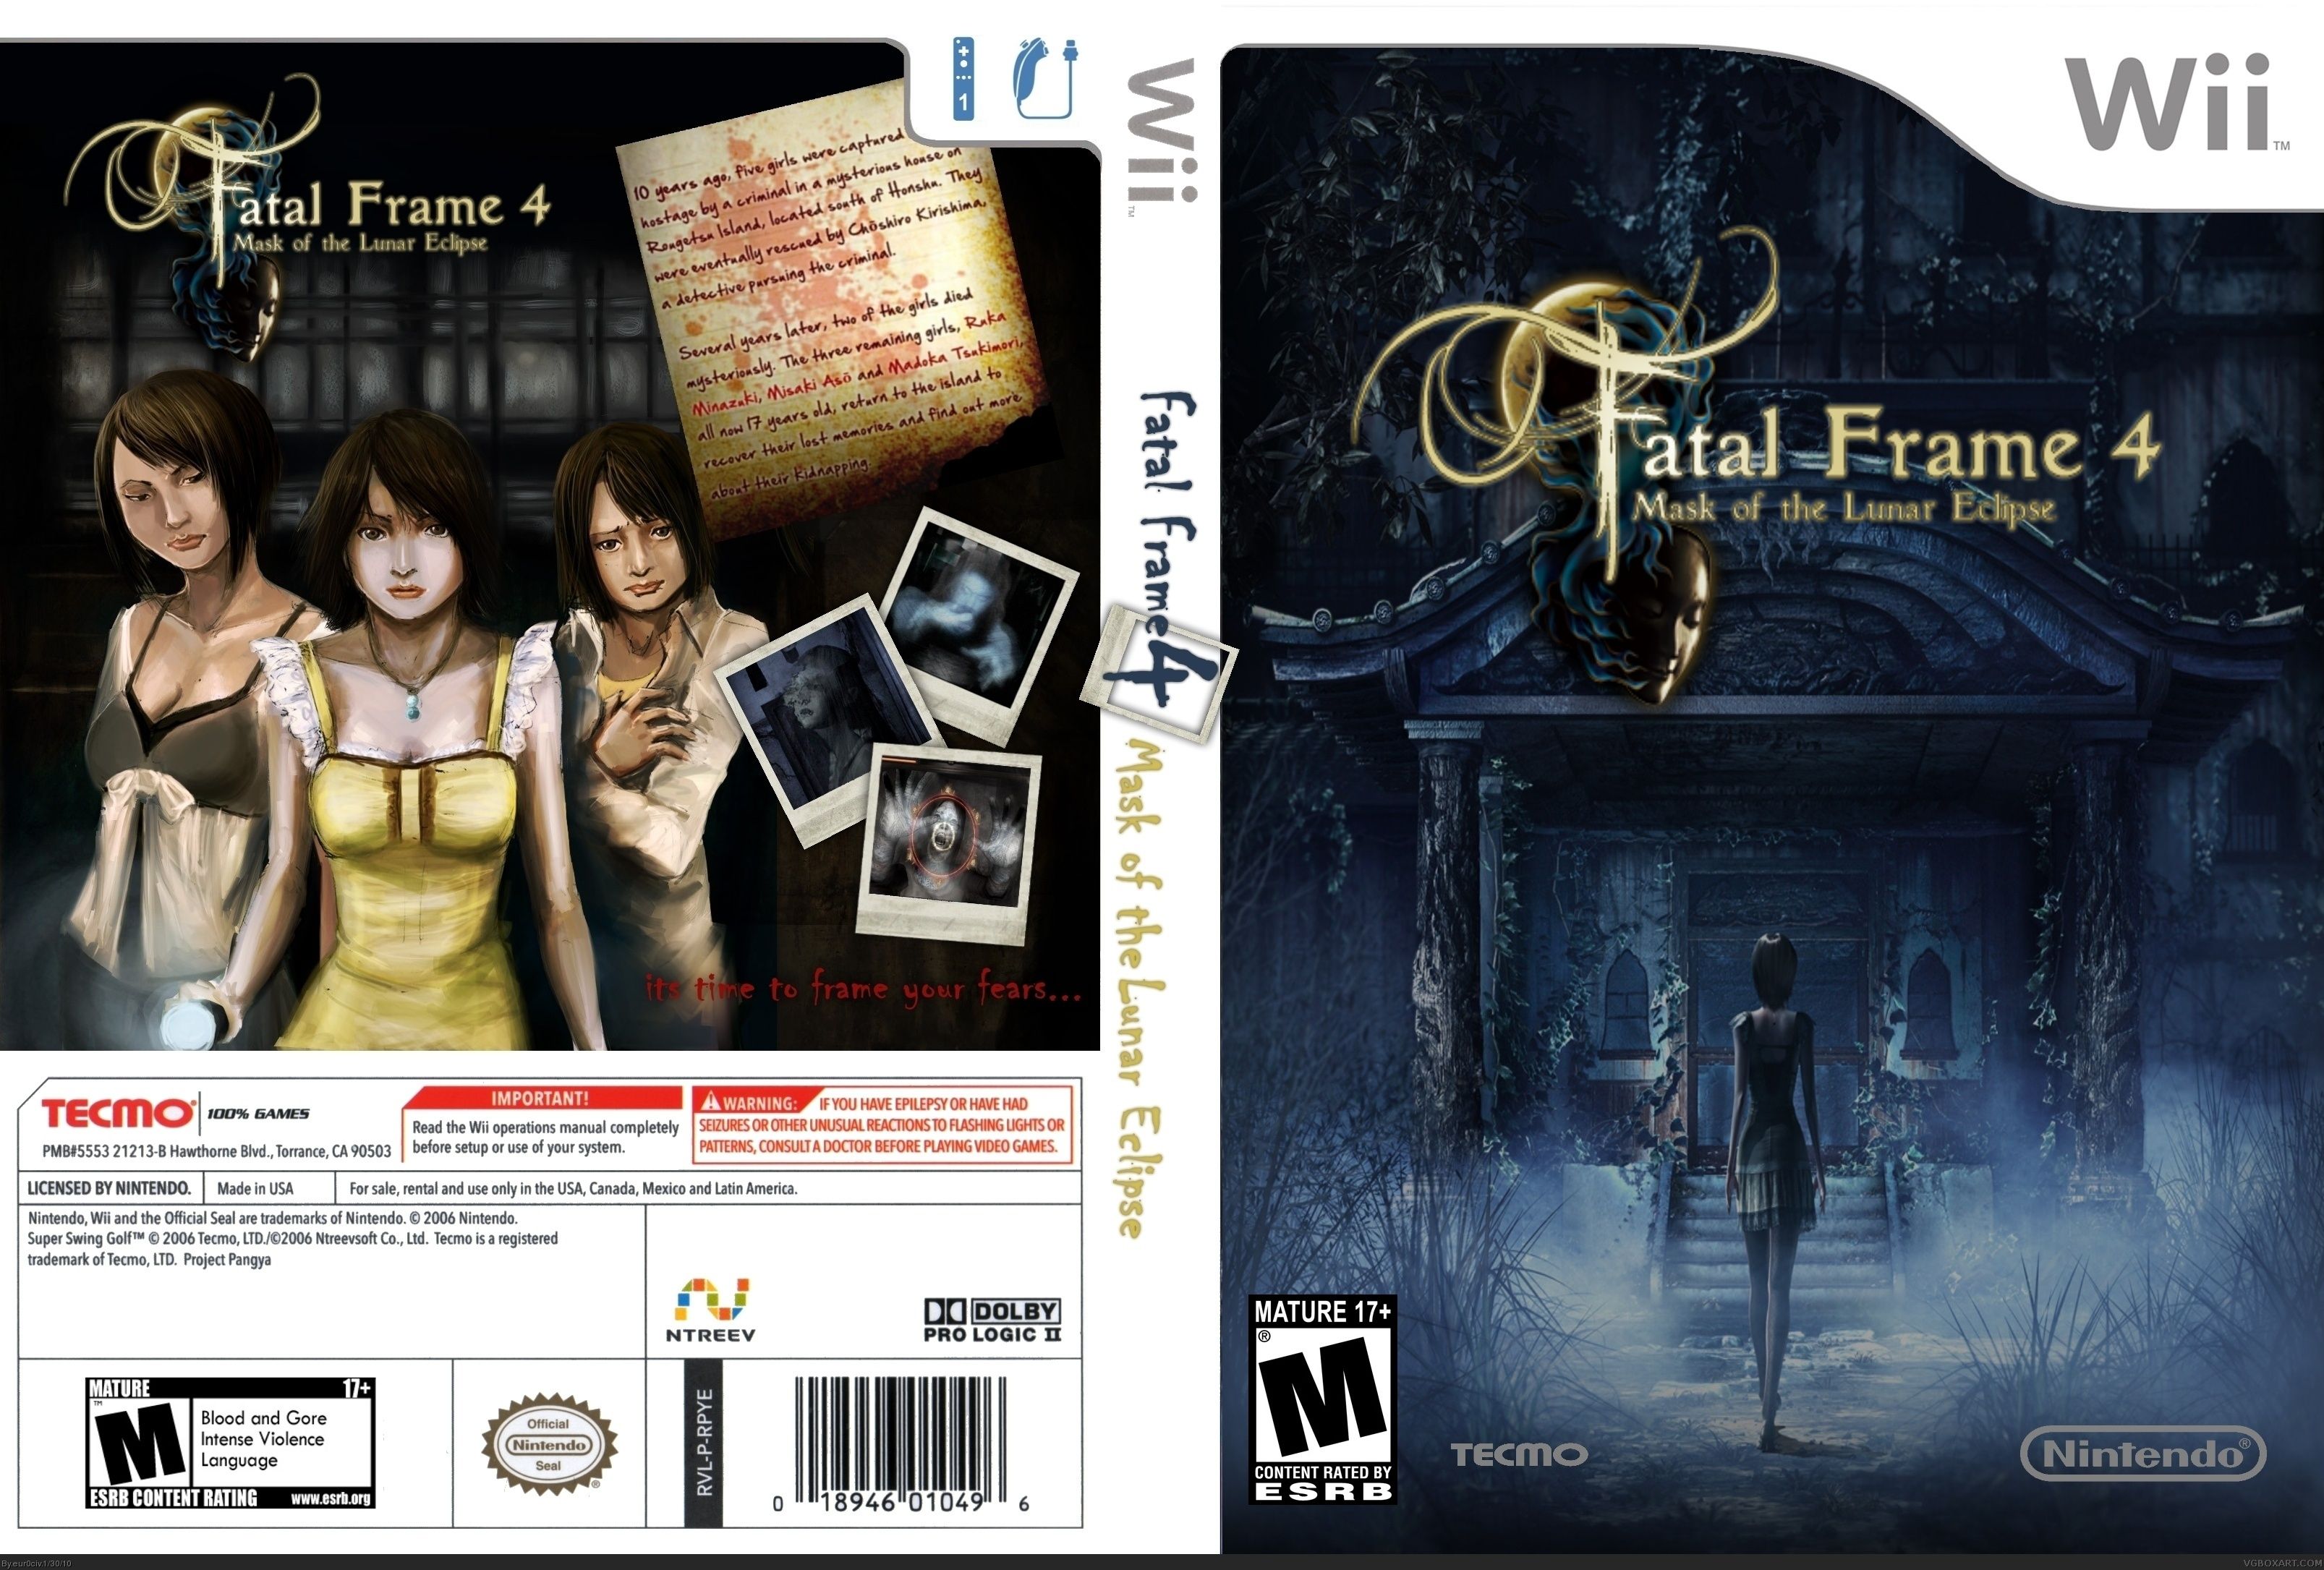 Viewing full size Fatal Frame 4 mask of the Lunar Eclipse box cover